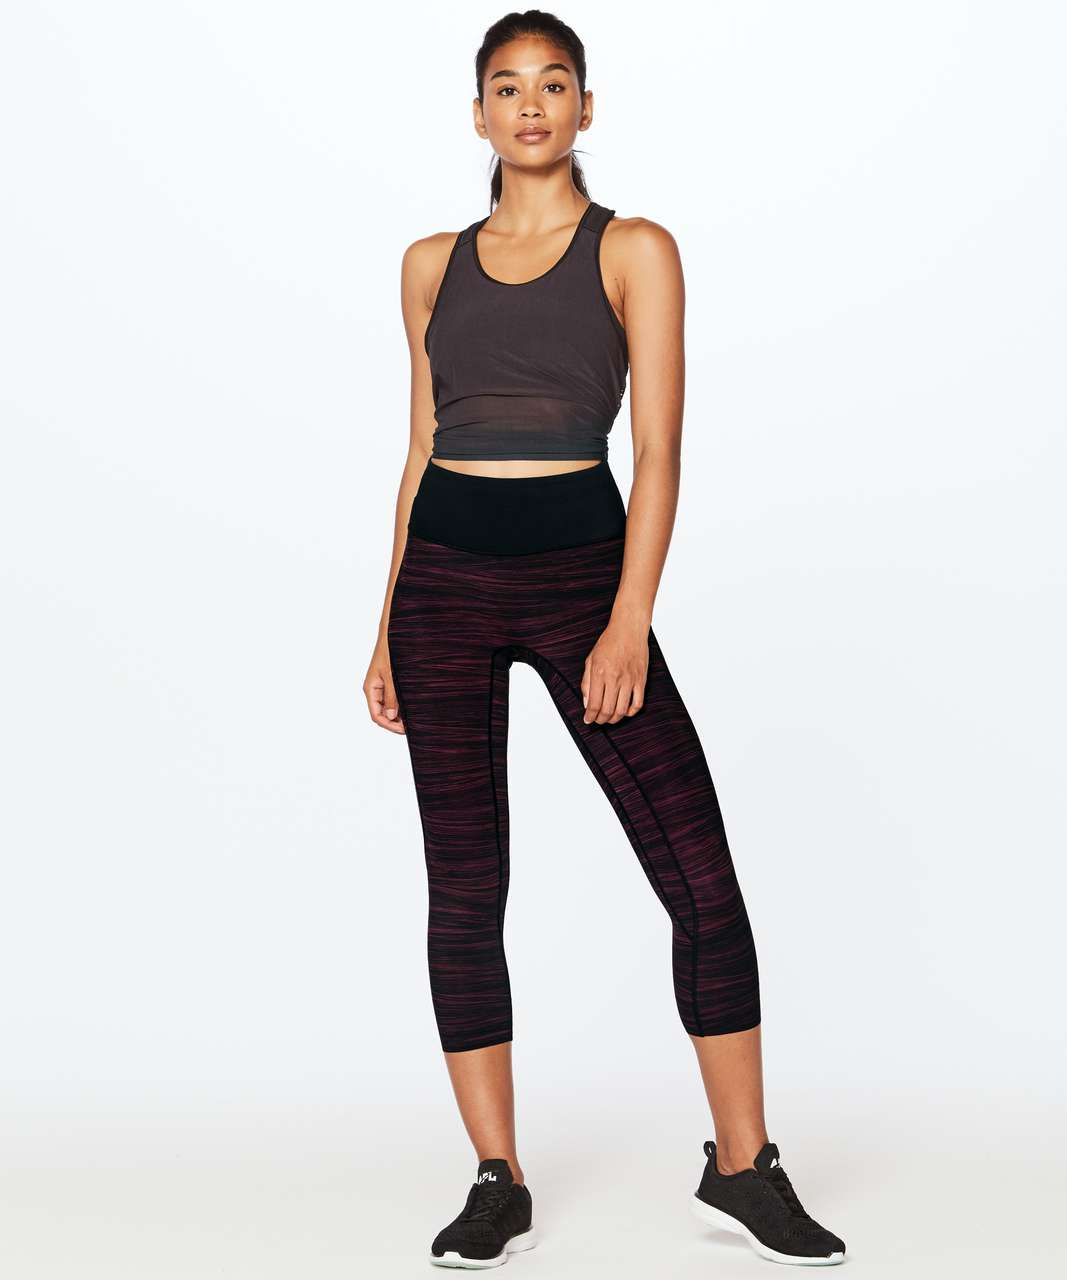 ead95200b0 Lululemon Run The Day Crop (17